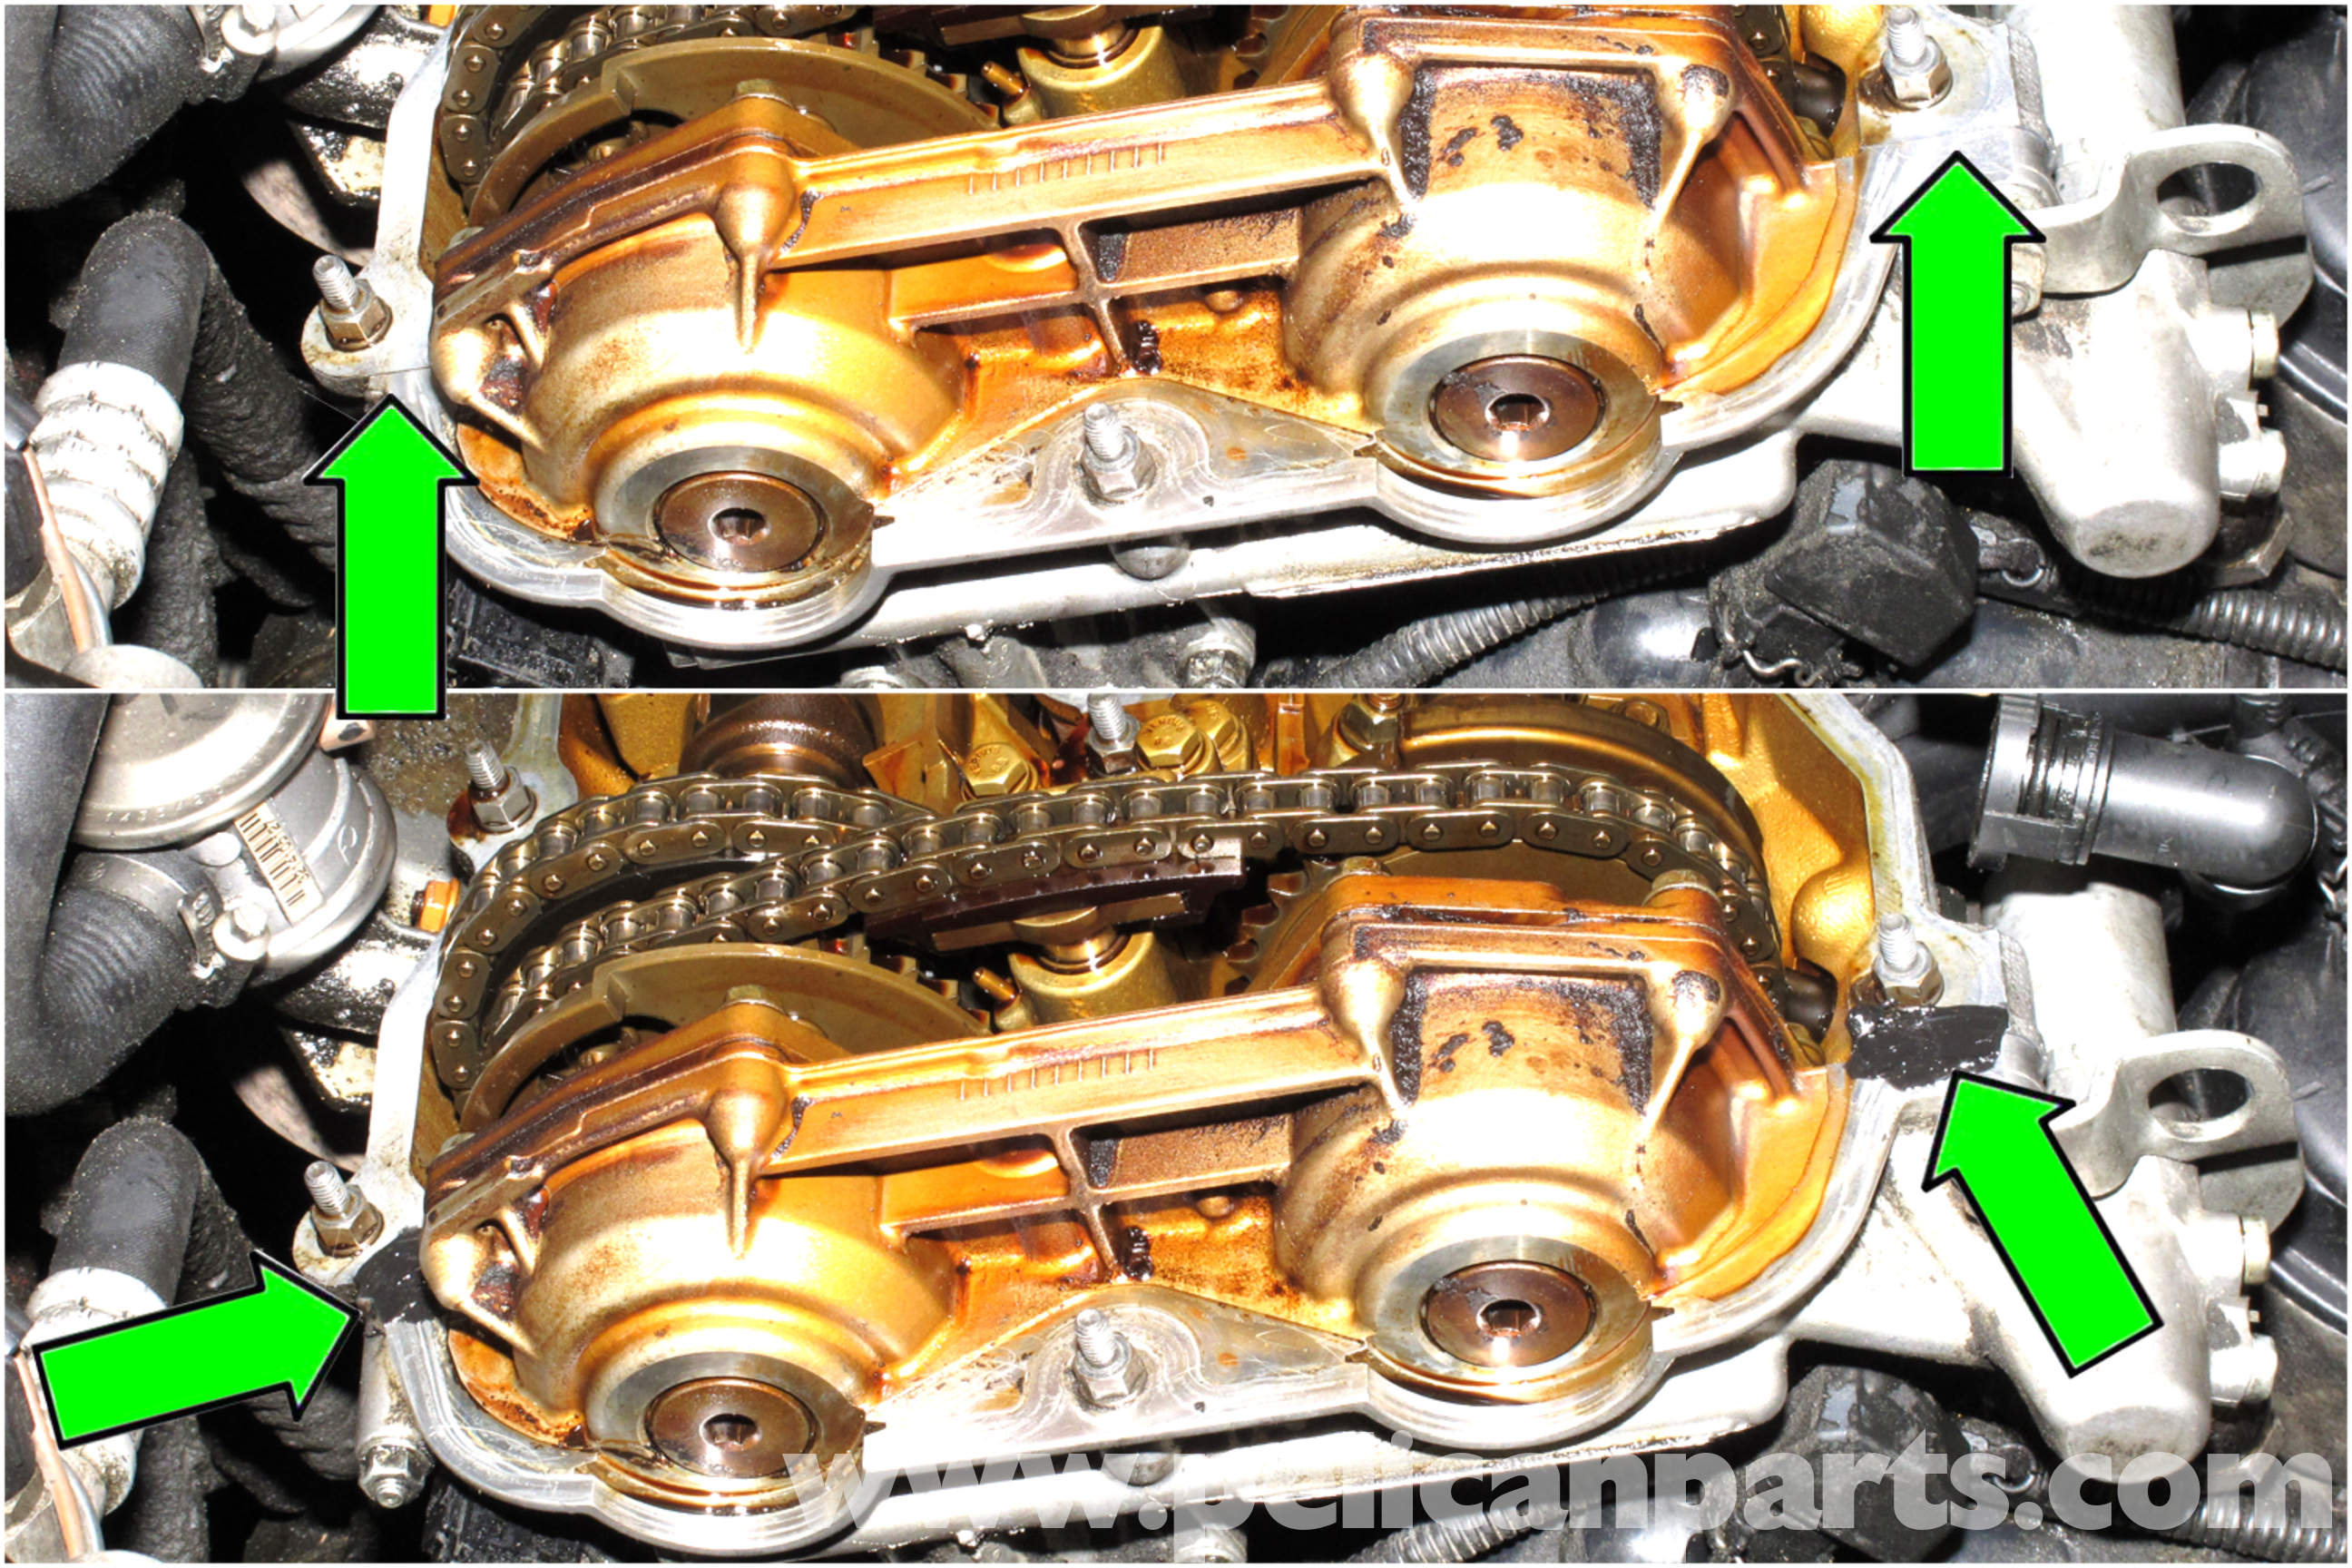 FUEL Intake Manifold Replacement together with E36 Water Pump also 64 BODY Removing Your Exhaust System further 83 ENGINE Engine Drive Belt Tensioner Idler Replacement together with Convertible Top Design For The 72 89 Mercedes Sl. on 2004 bmw 325i parts diagram